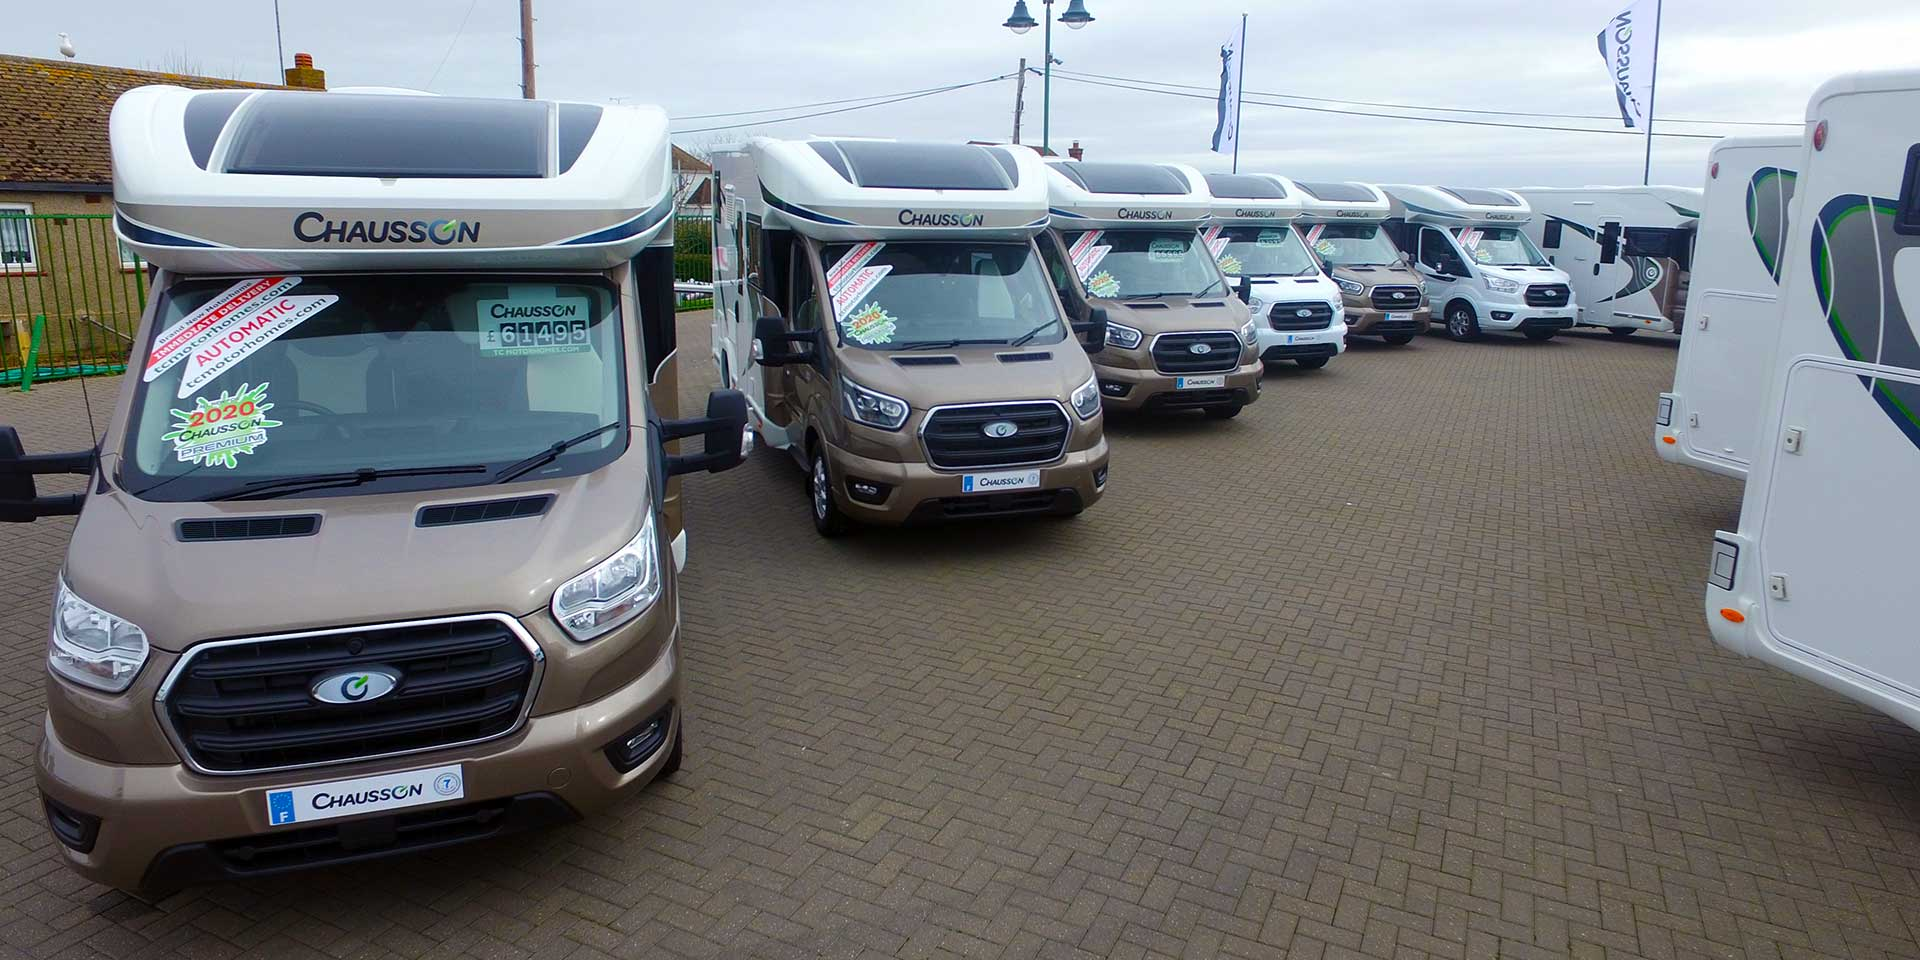 New Chausson Motorhomes lined up